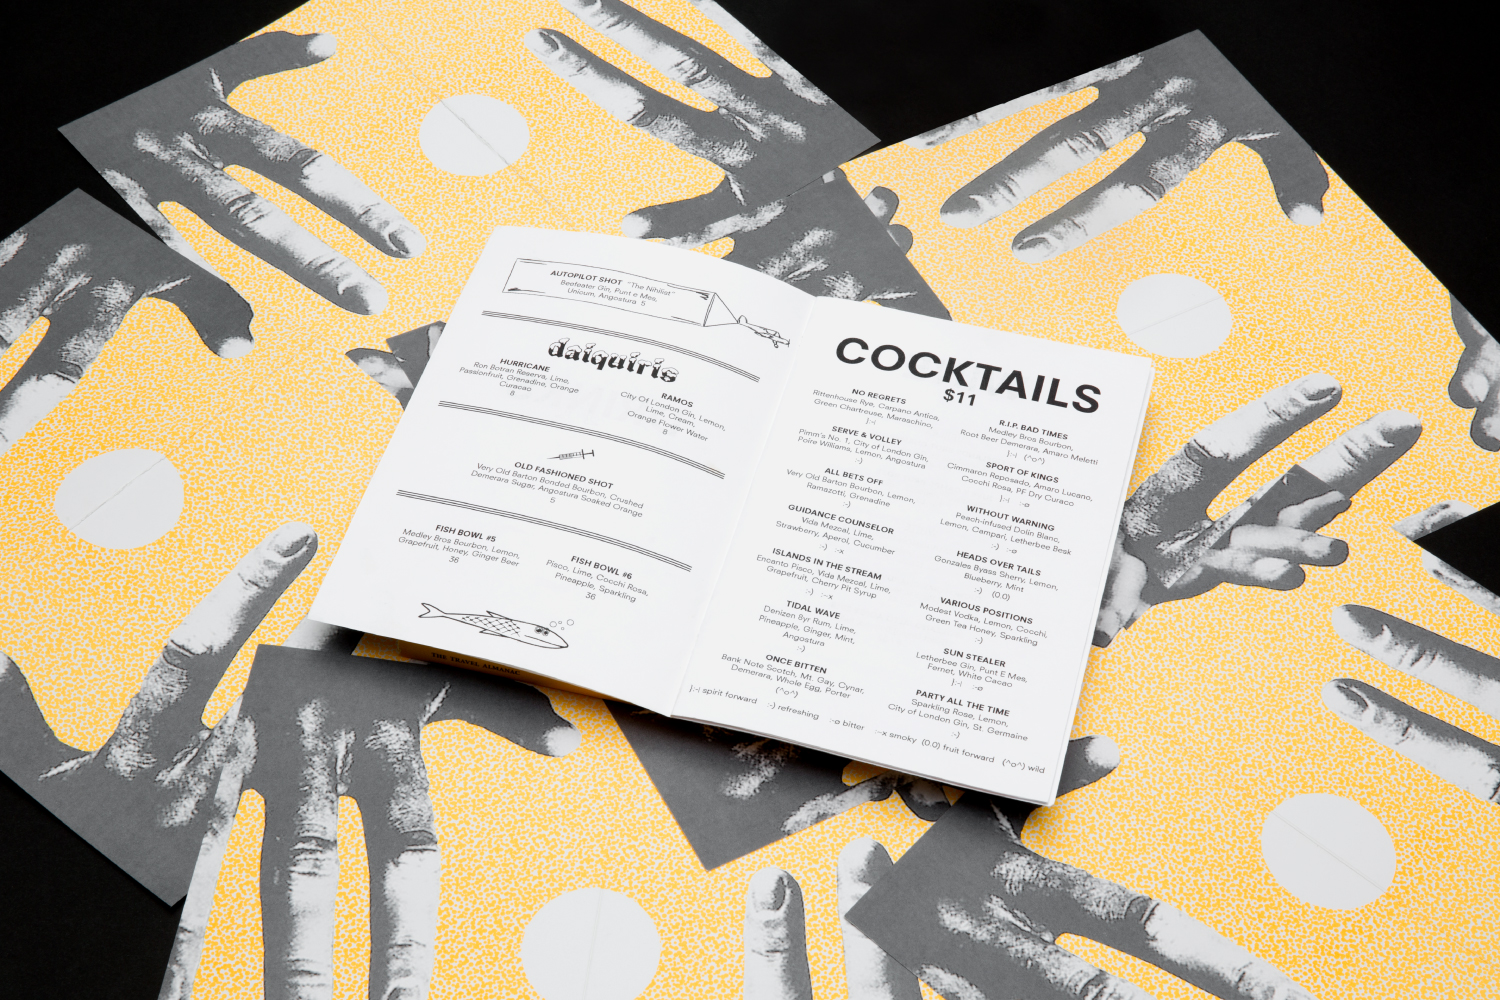 Analogue Chicago restaurant menu design.